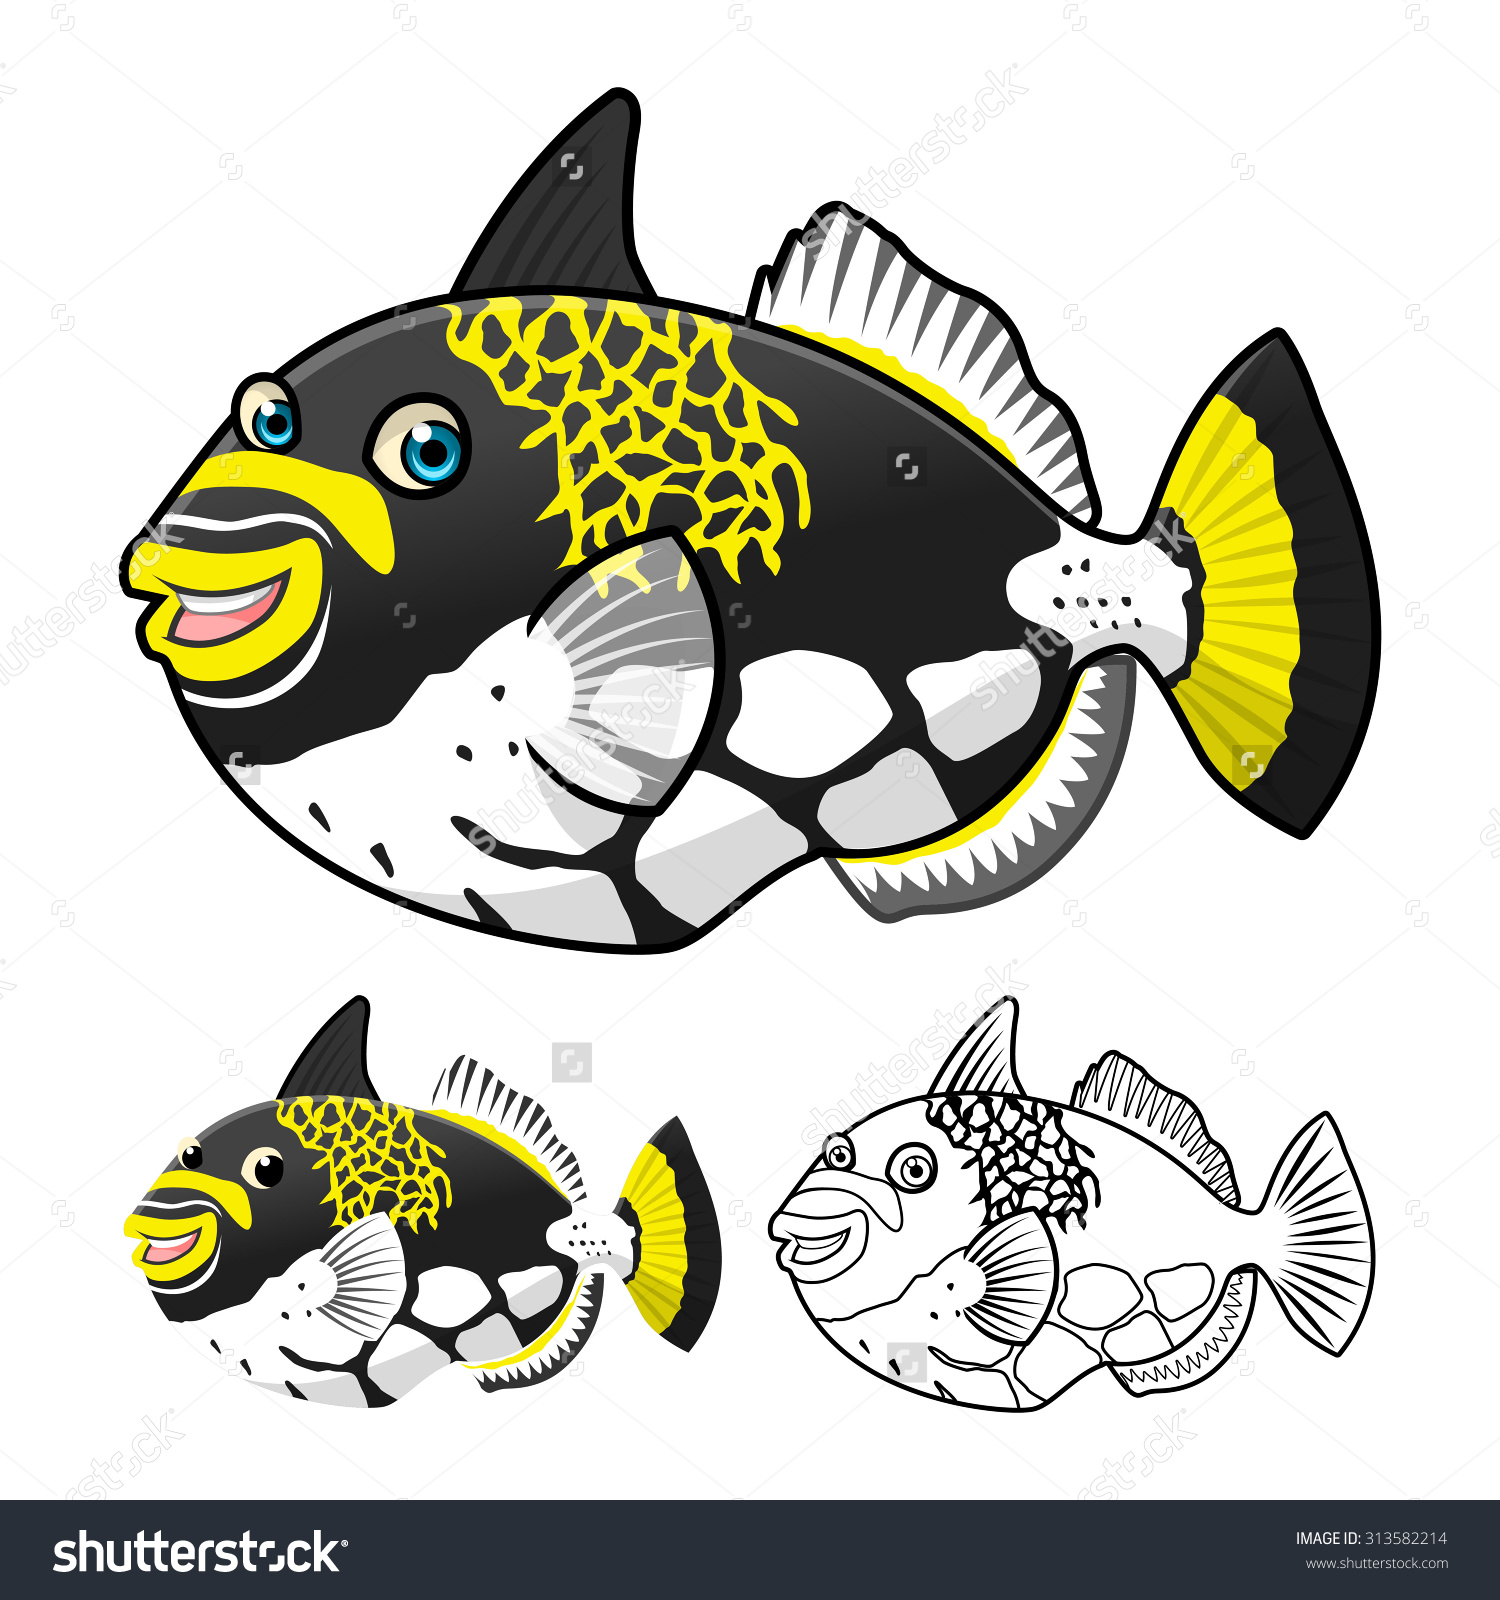 Triggerfish clipart.